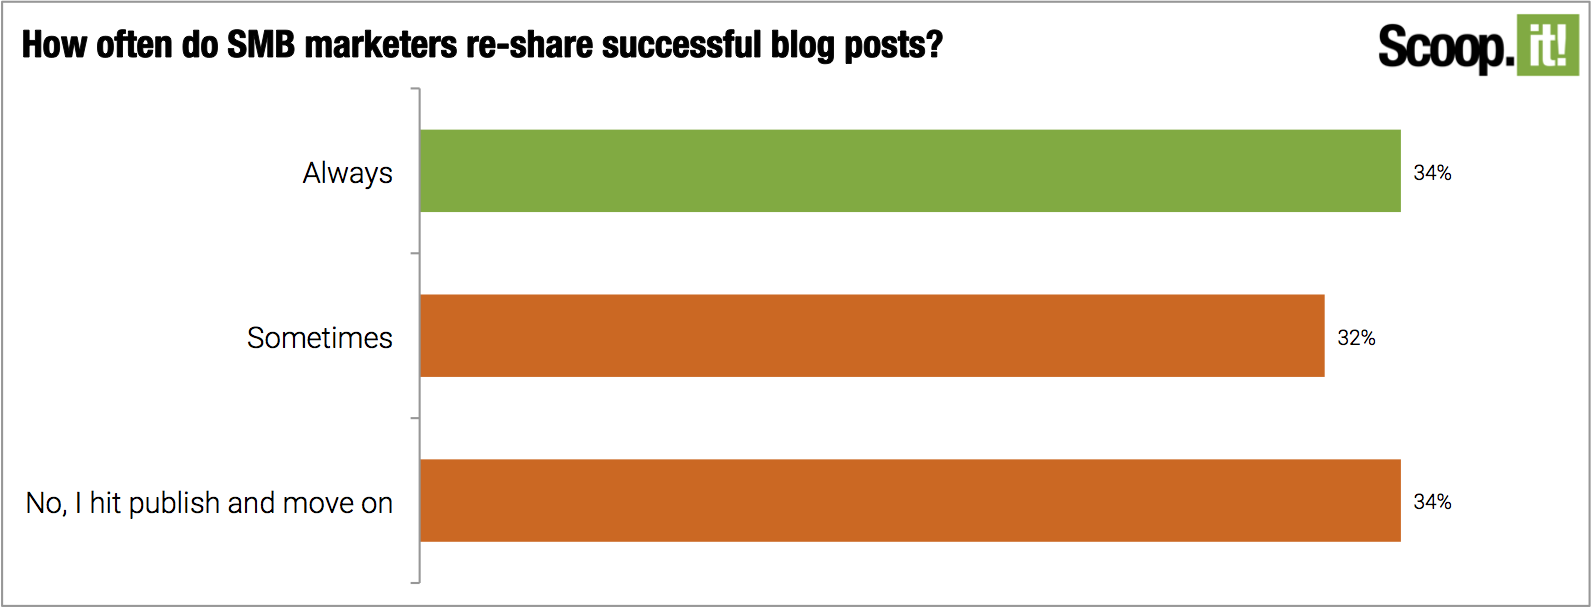 reshare successful blog posts